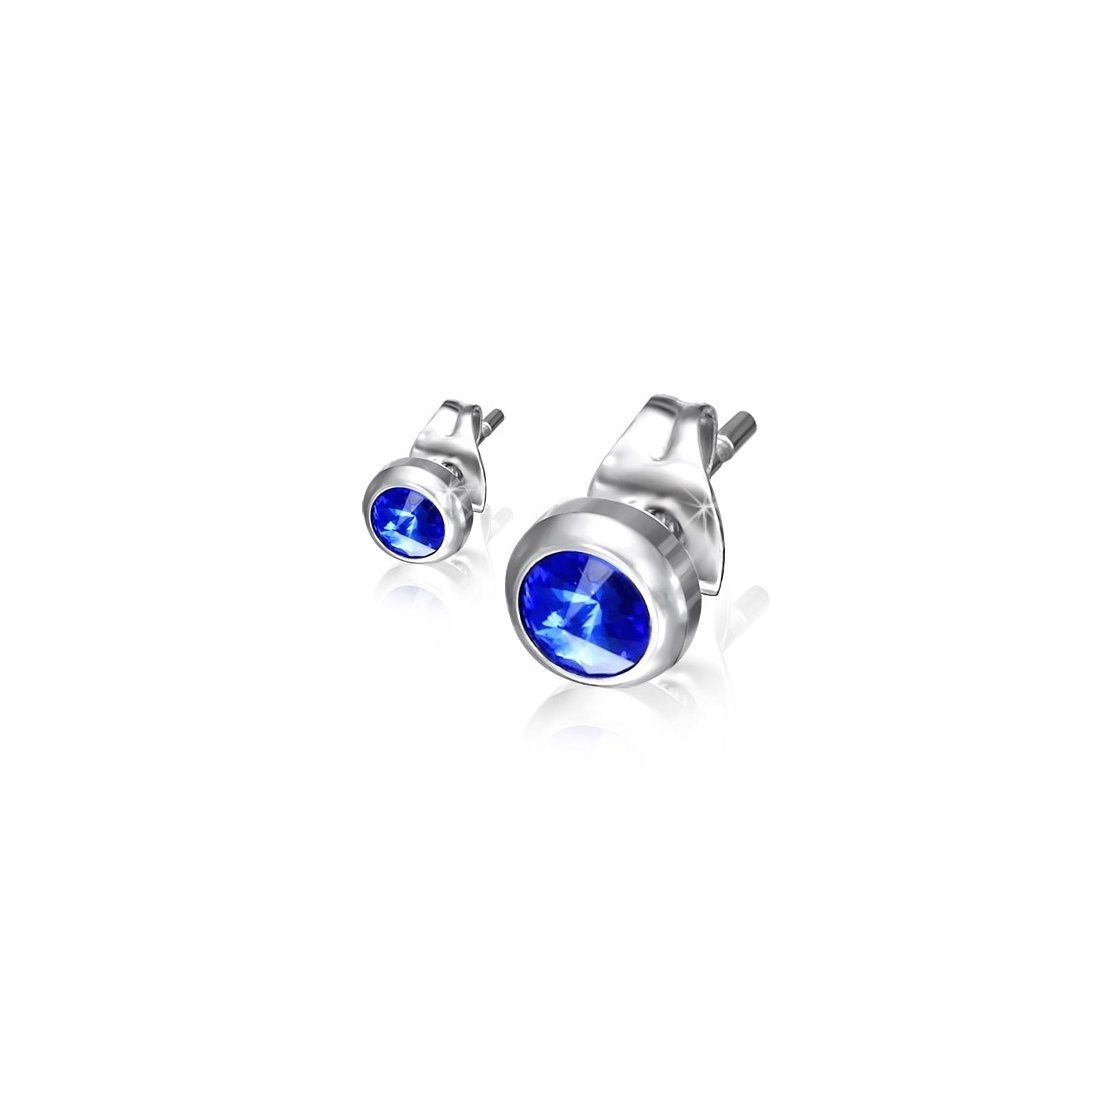 Stainless Steel Bezel-Set Round Circle Stud Earrings with Capri Blue CZ pair